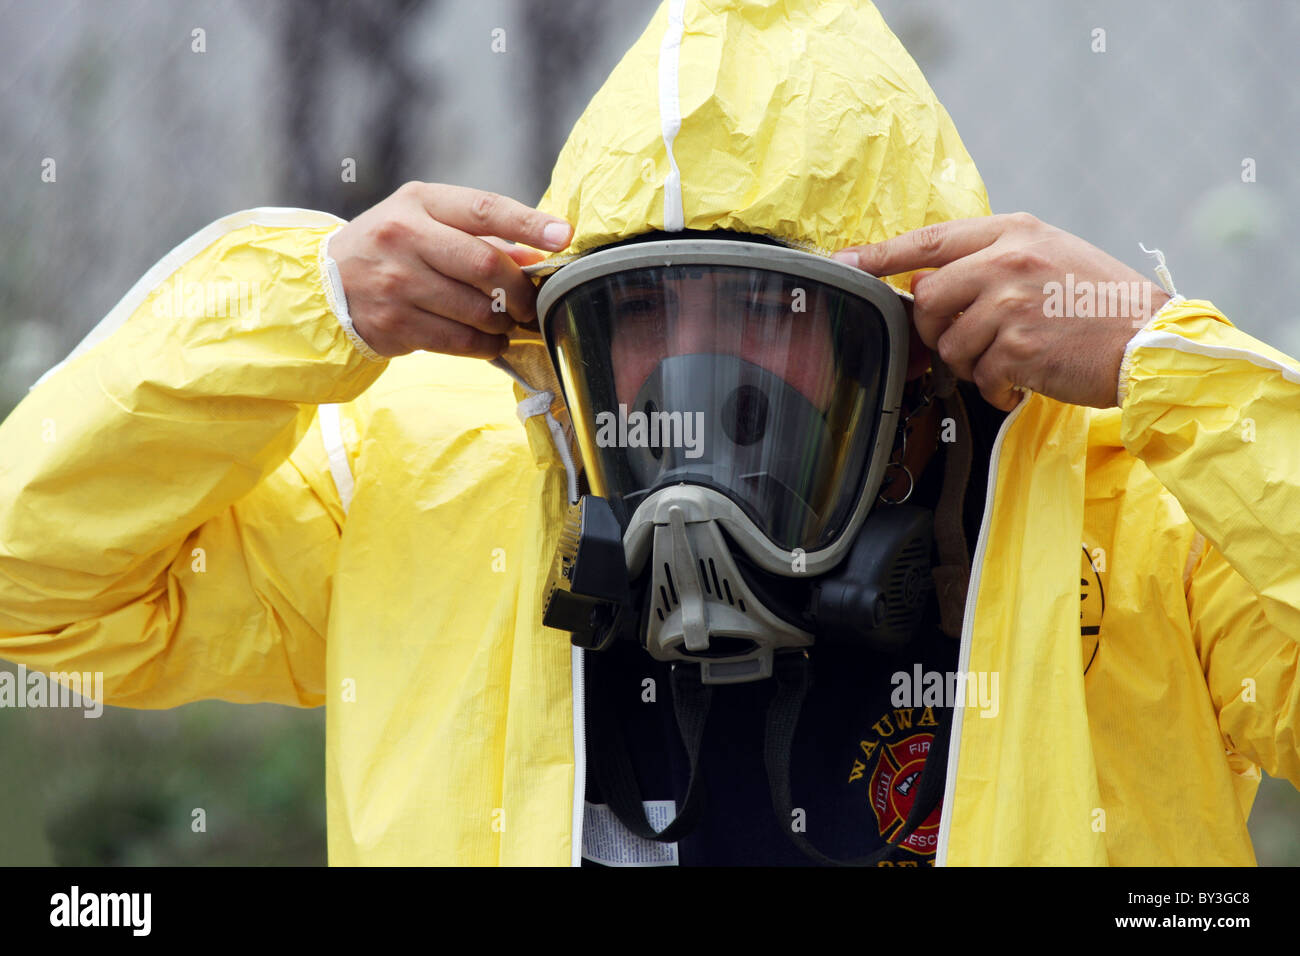 A firefighter putting on a yellow body suit protector for a hazmat situation - Stock Image